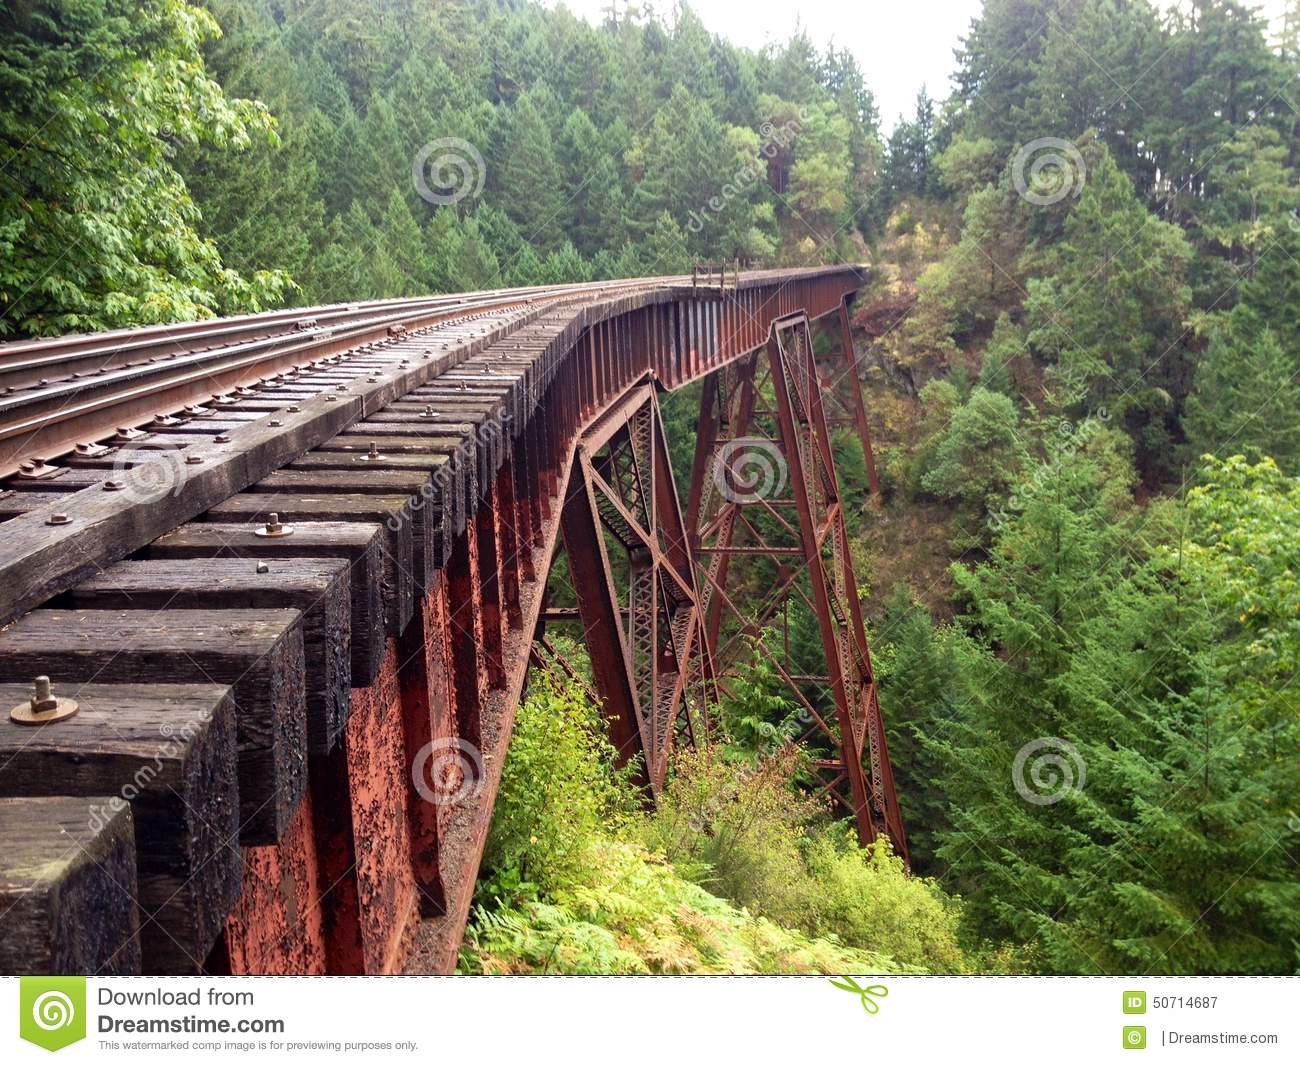 ... Or Train Bridge Or Trestle In The Forest Stock Photo - Image: 50714687